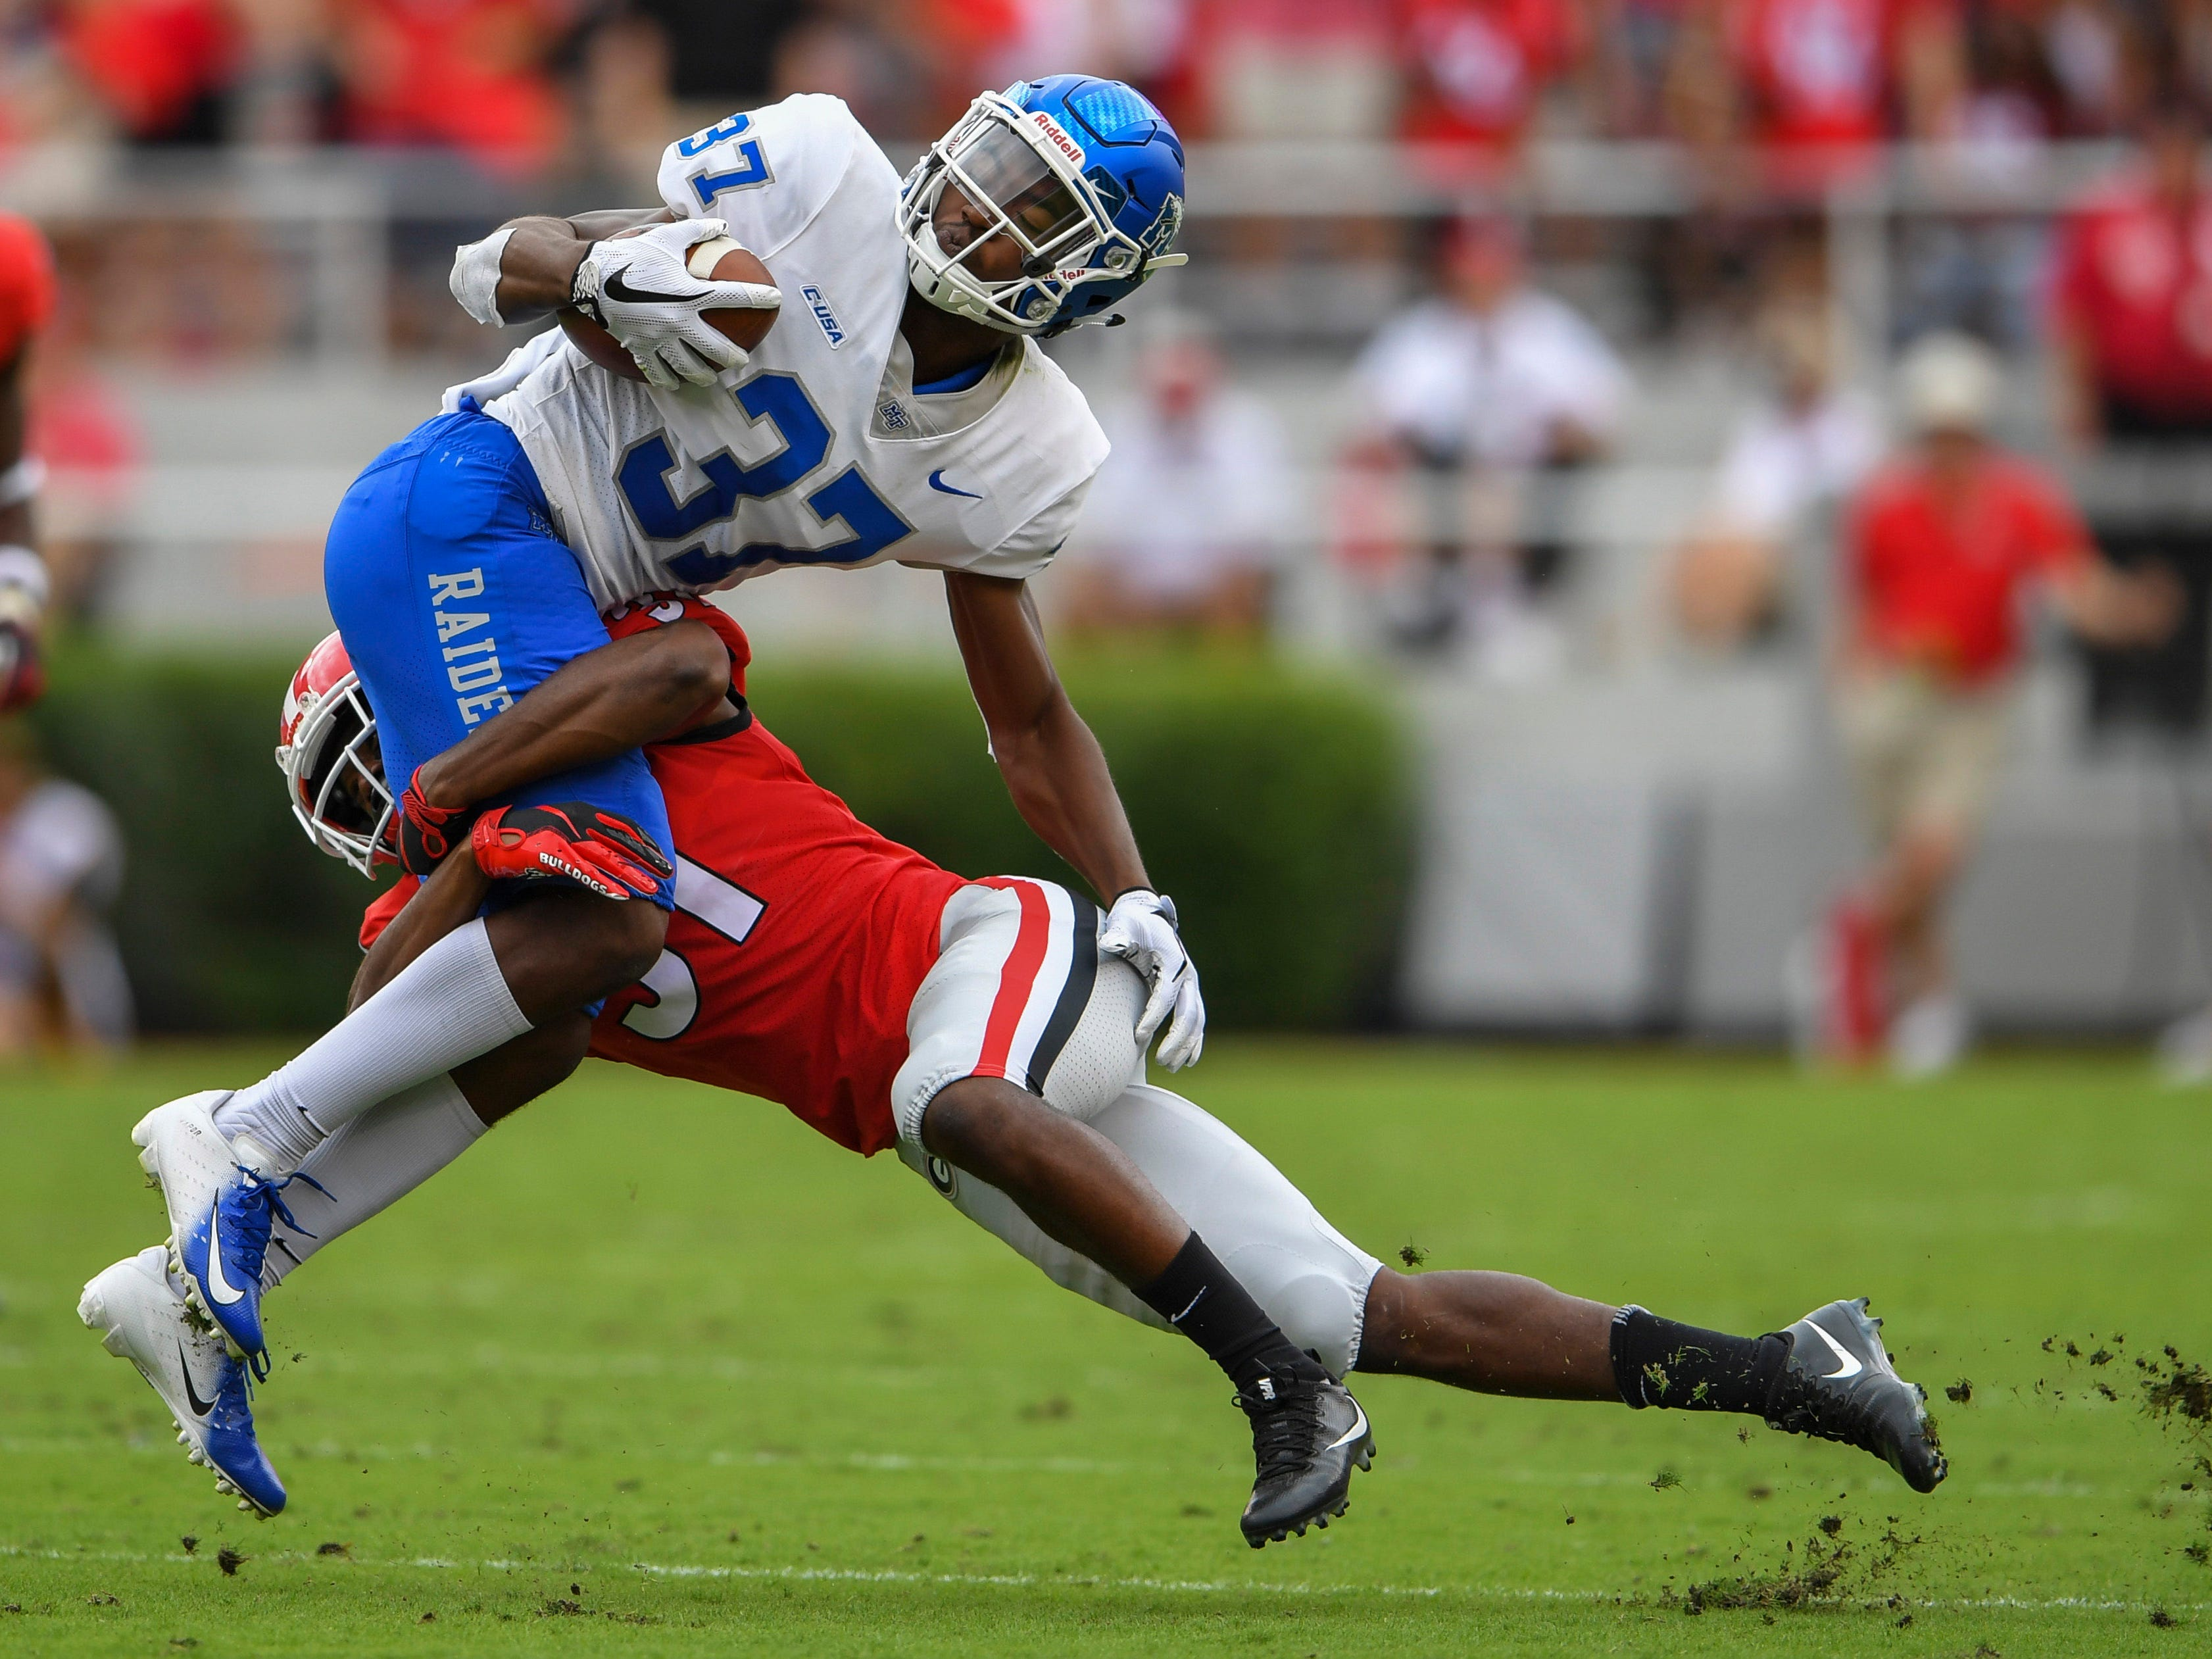 Georgia Bulldogs defensive back William Poole (31) hits Middle Tennessee Blue Raiders wide receiver Patrick Smith (37) during the first half at Sanford Stadium.